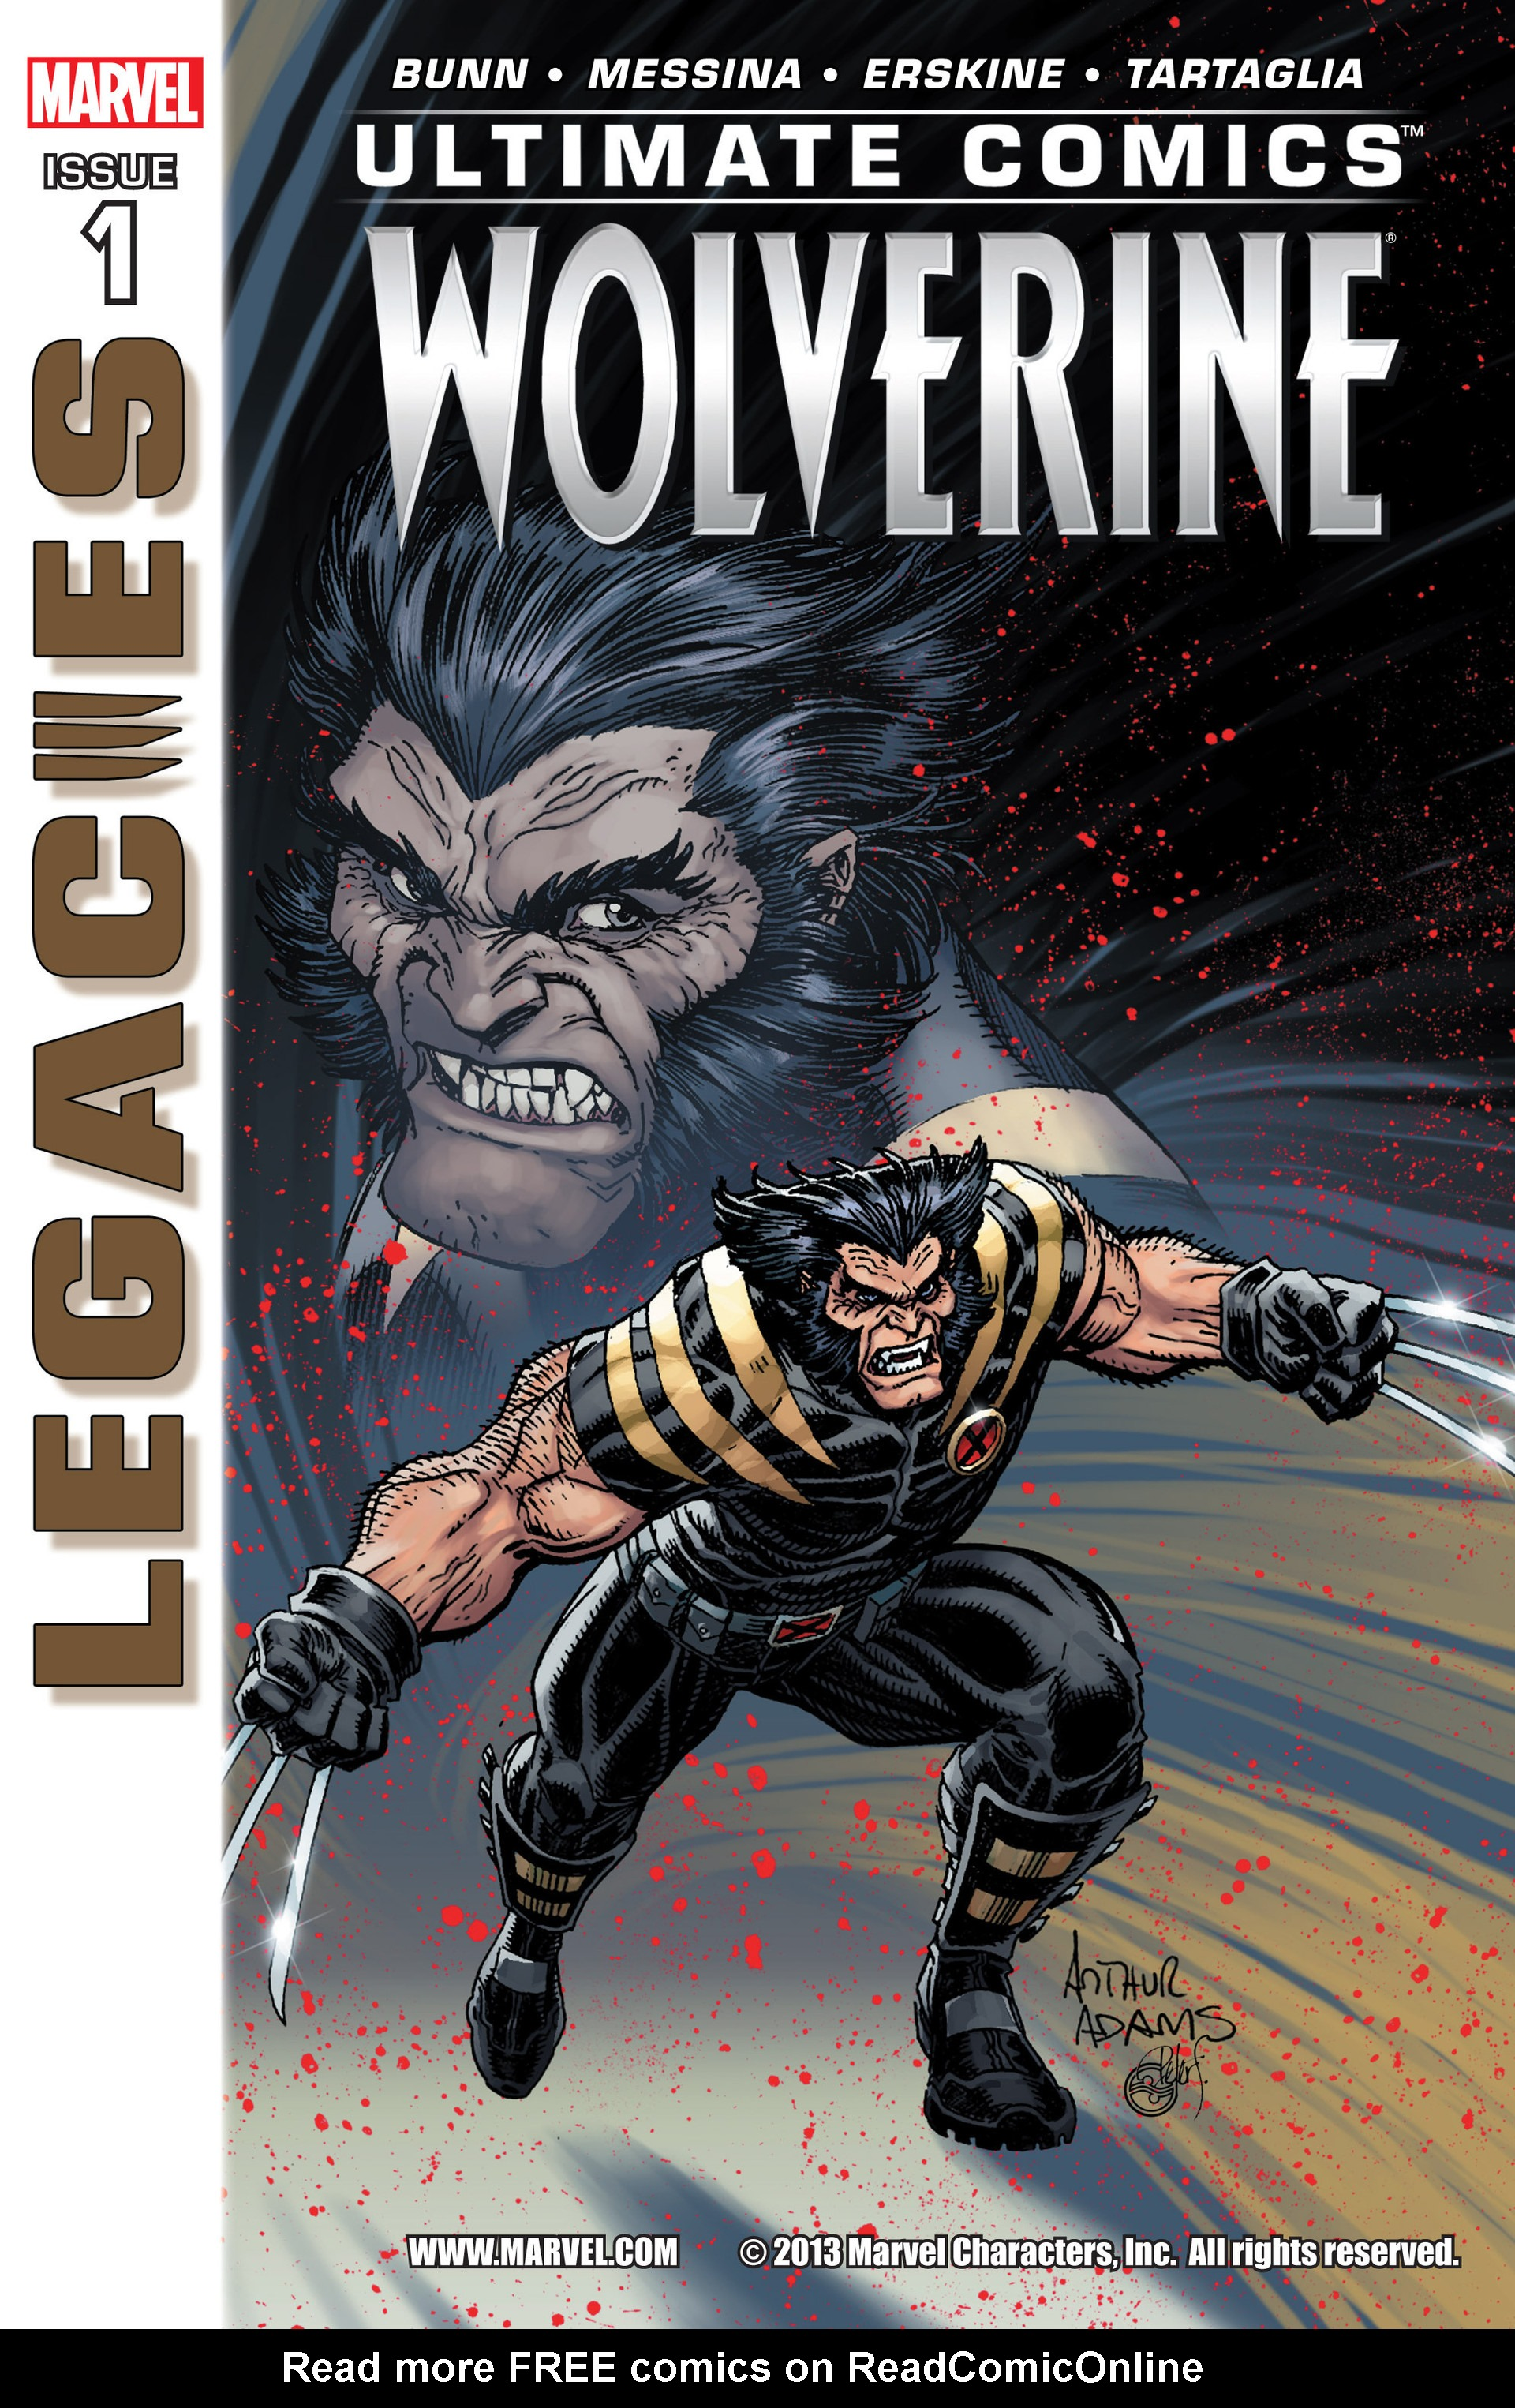 Read online Ultimate Comics Wolverine comic -  Issue #1 - 1